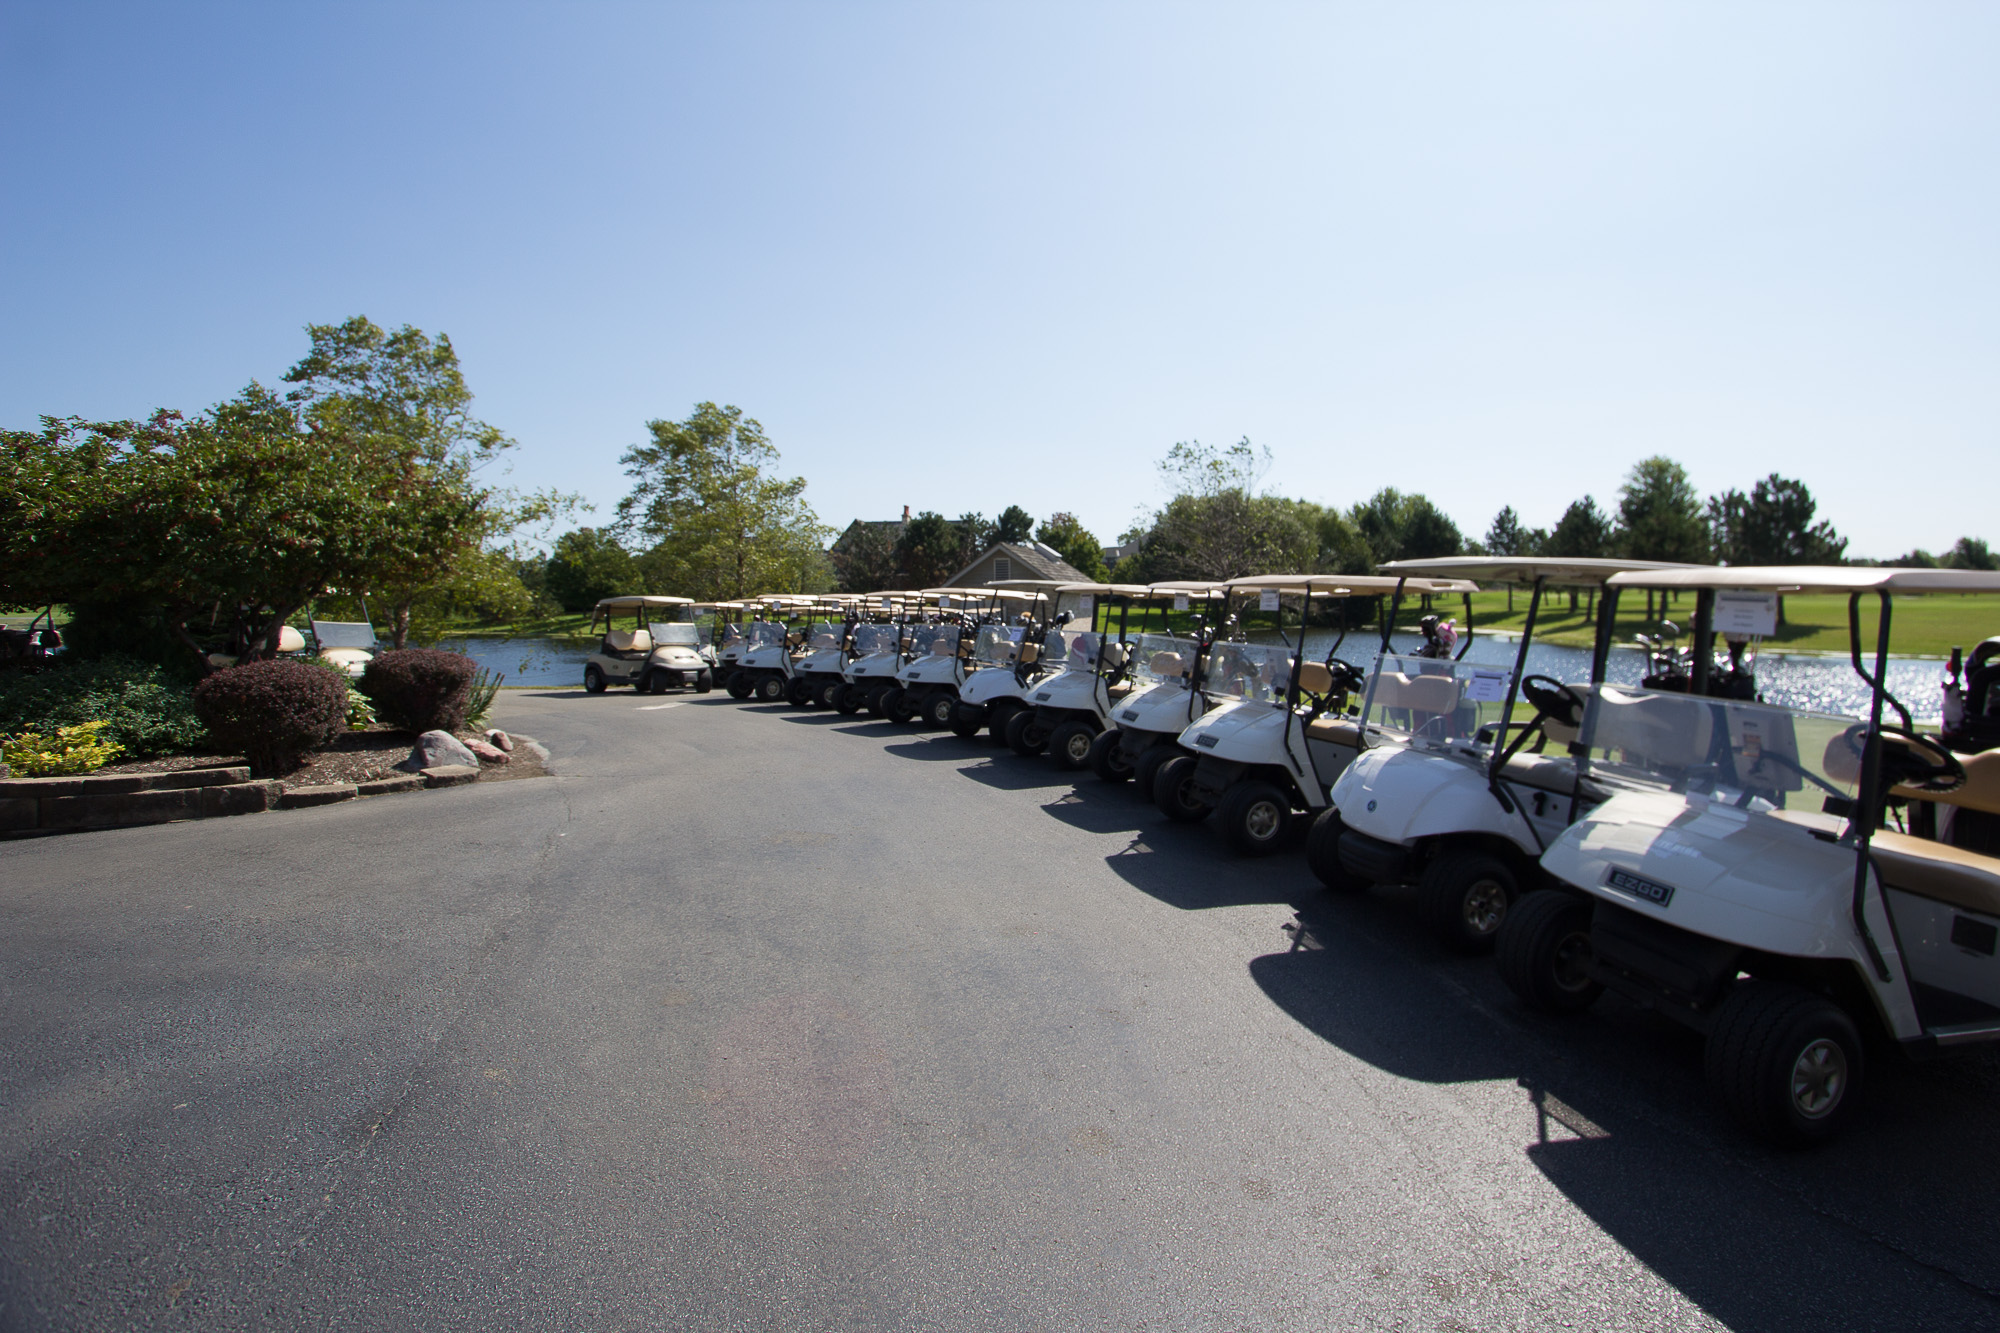 shrine of christs passion golf outing 2015 17